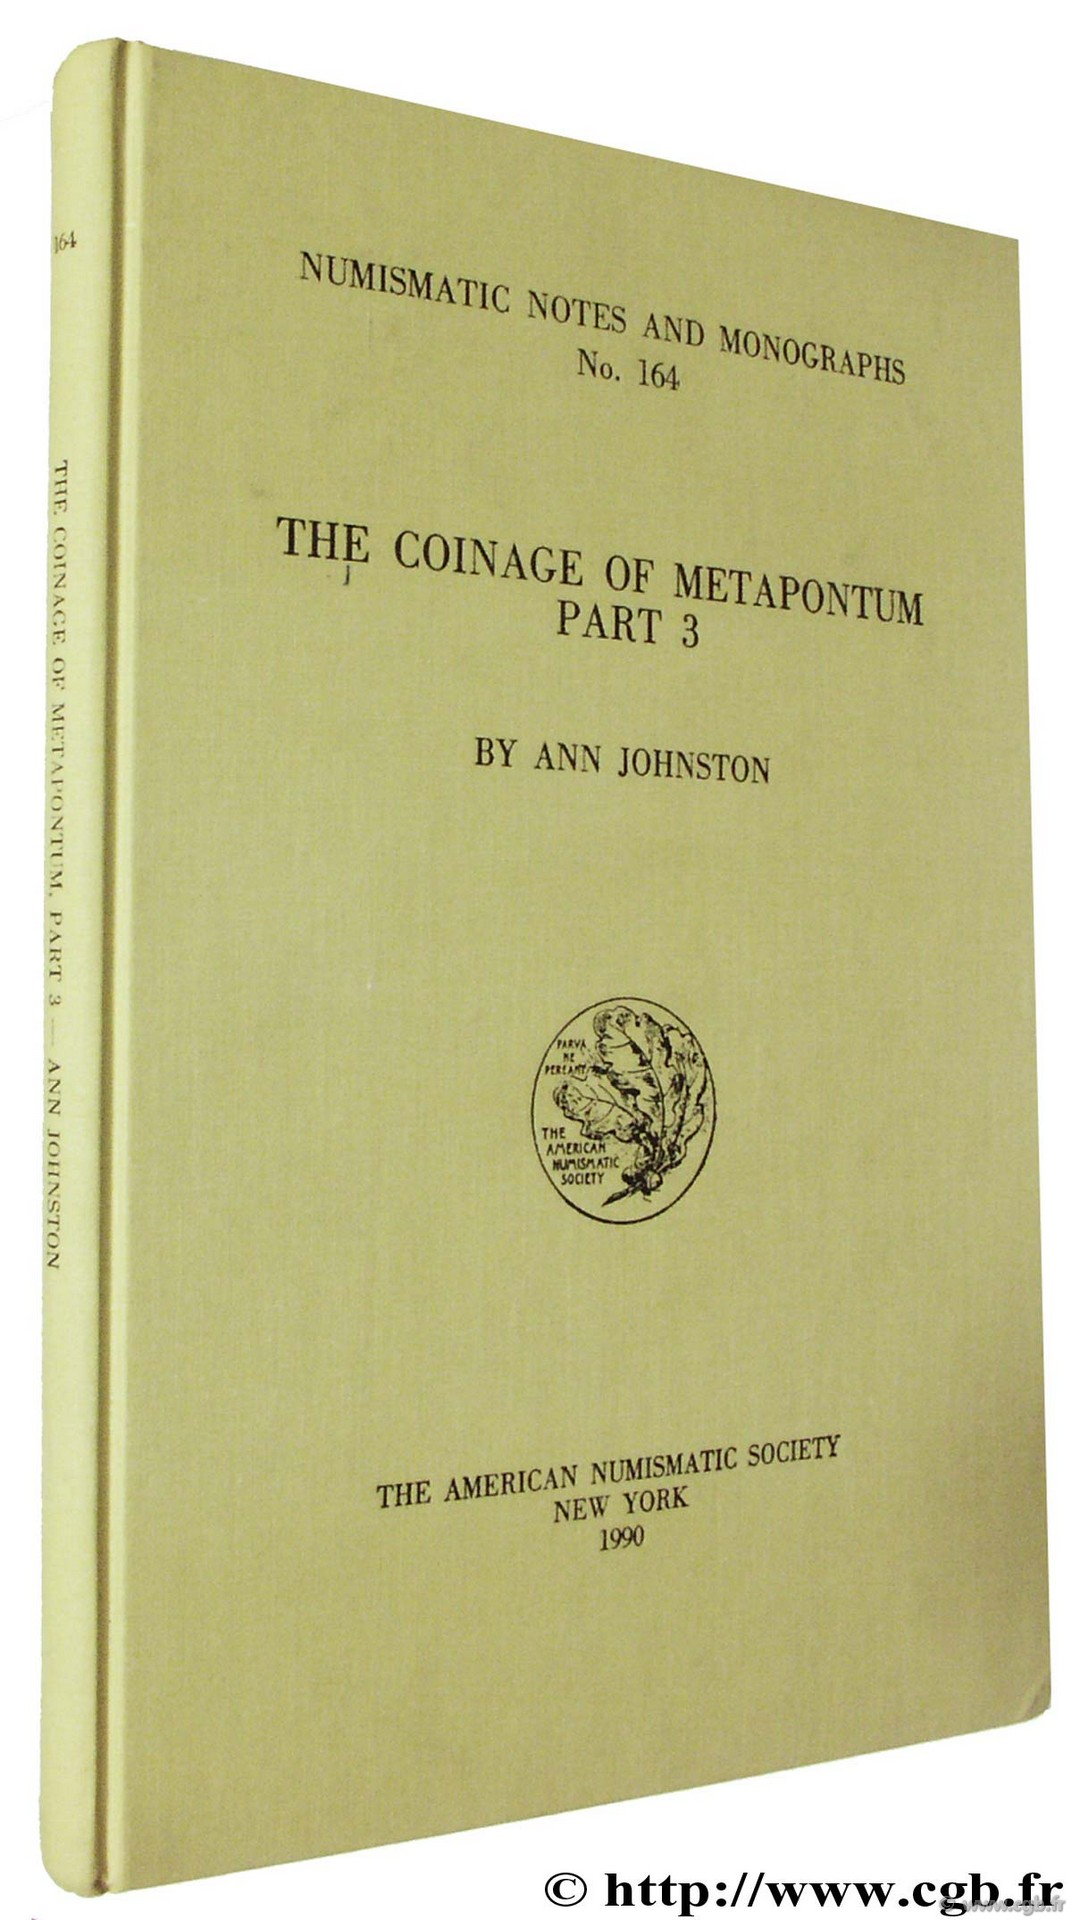 The Coinage of Metapontum, part 3, Numismatic Notes and Monographs n° 164, The American Numismatic Society JOHNSTON A.